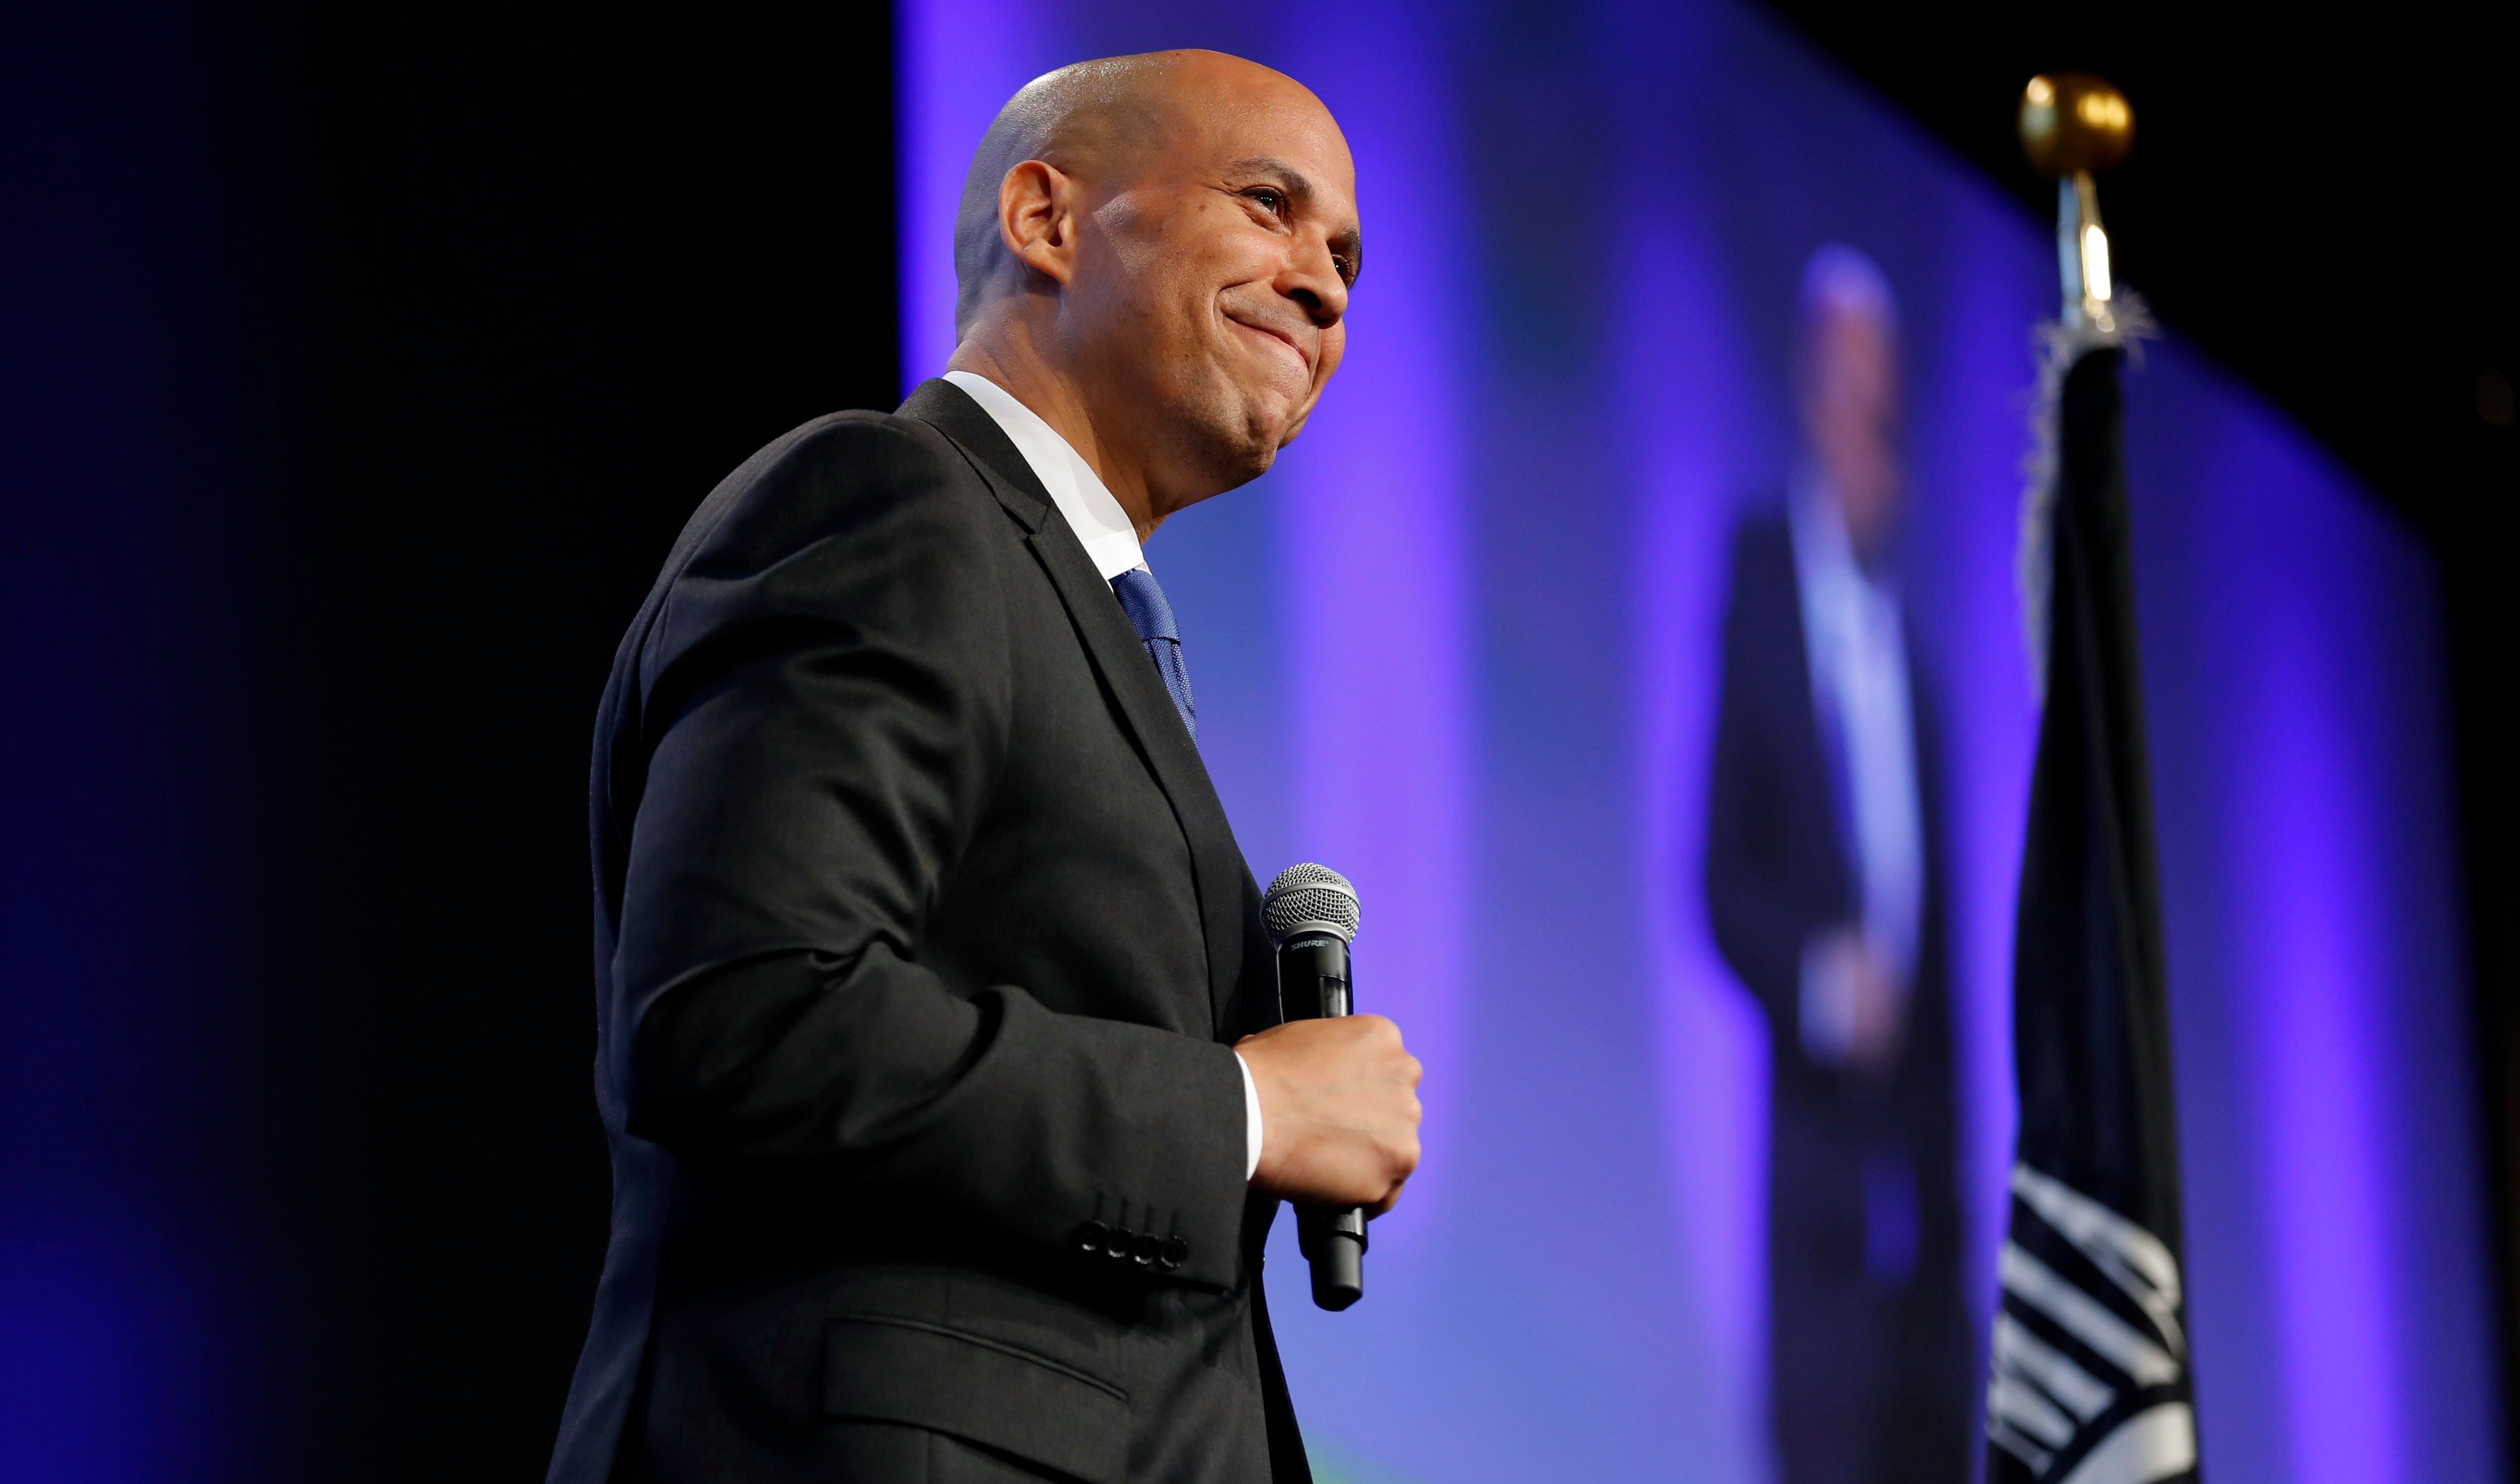 U.S. Sen. Cory Booker, D-N.J., speaks during the Iowa Democratic Party's annual Fall Gala, in Des Moines, Iowa, on Oct. 6, 2018.